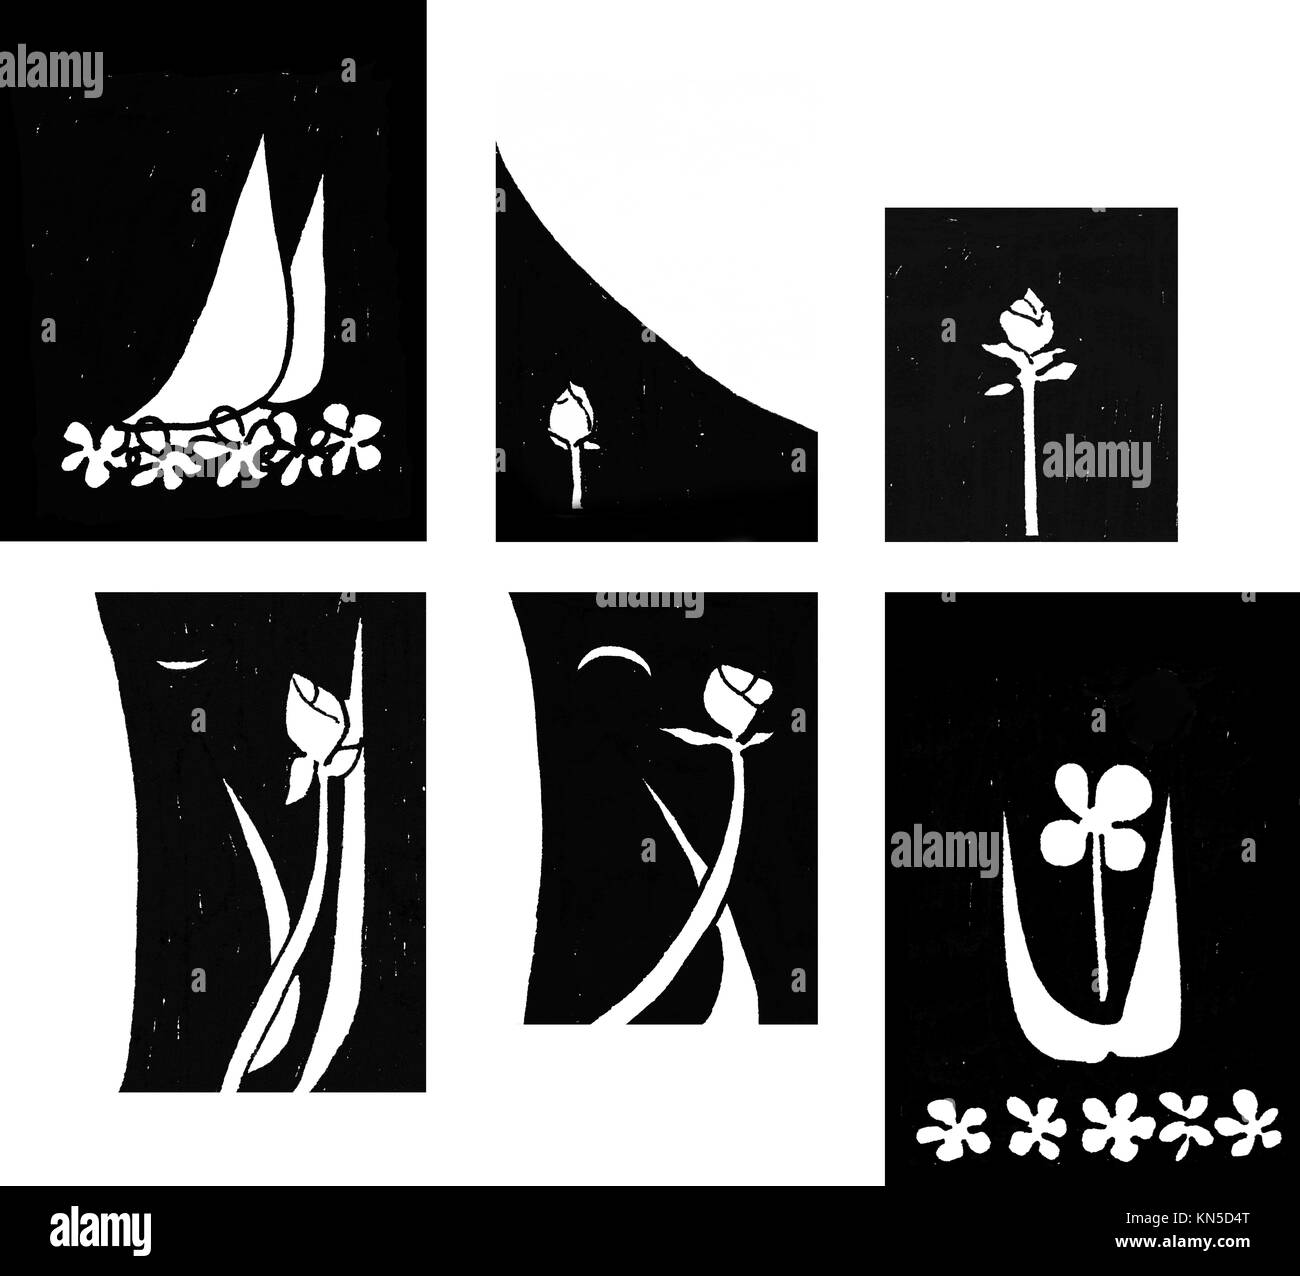 Bundle sails flowers, original abstract ink sketch in black and white. - Stock Image